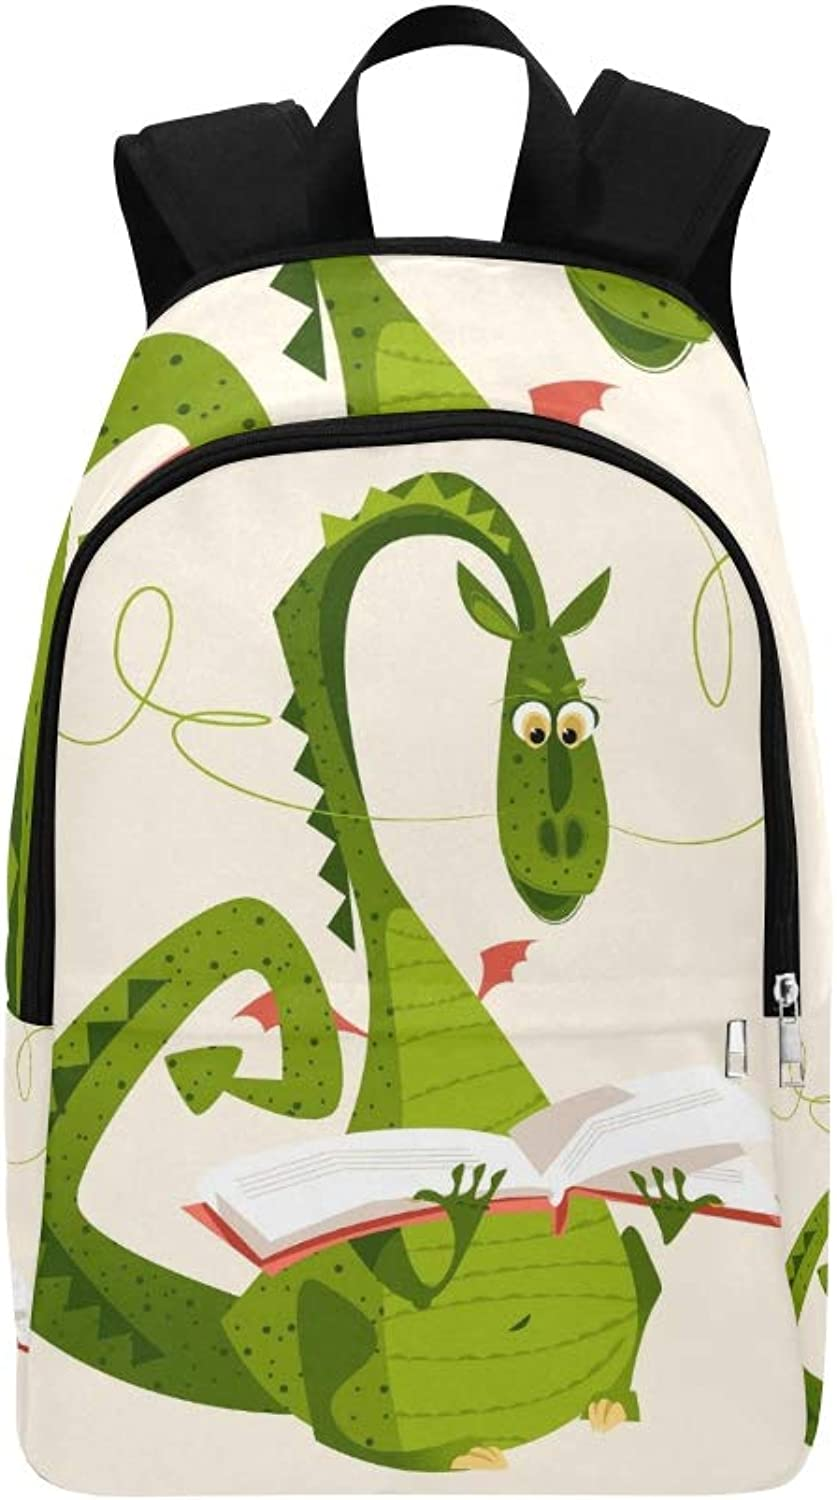 Dragon Sitting Reading Book Diada De Casual Daypack Travel Bag College School Backpack for Mens and Women